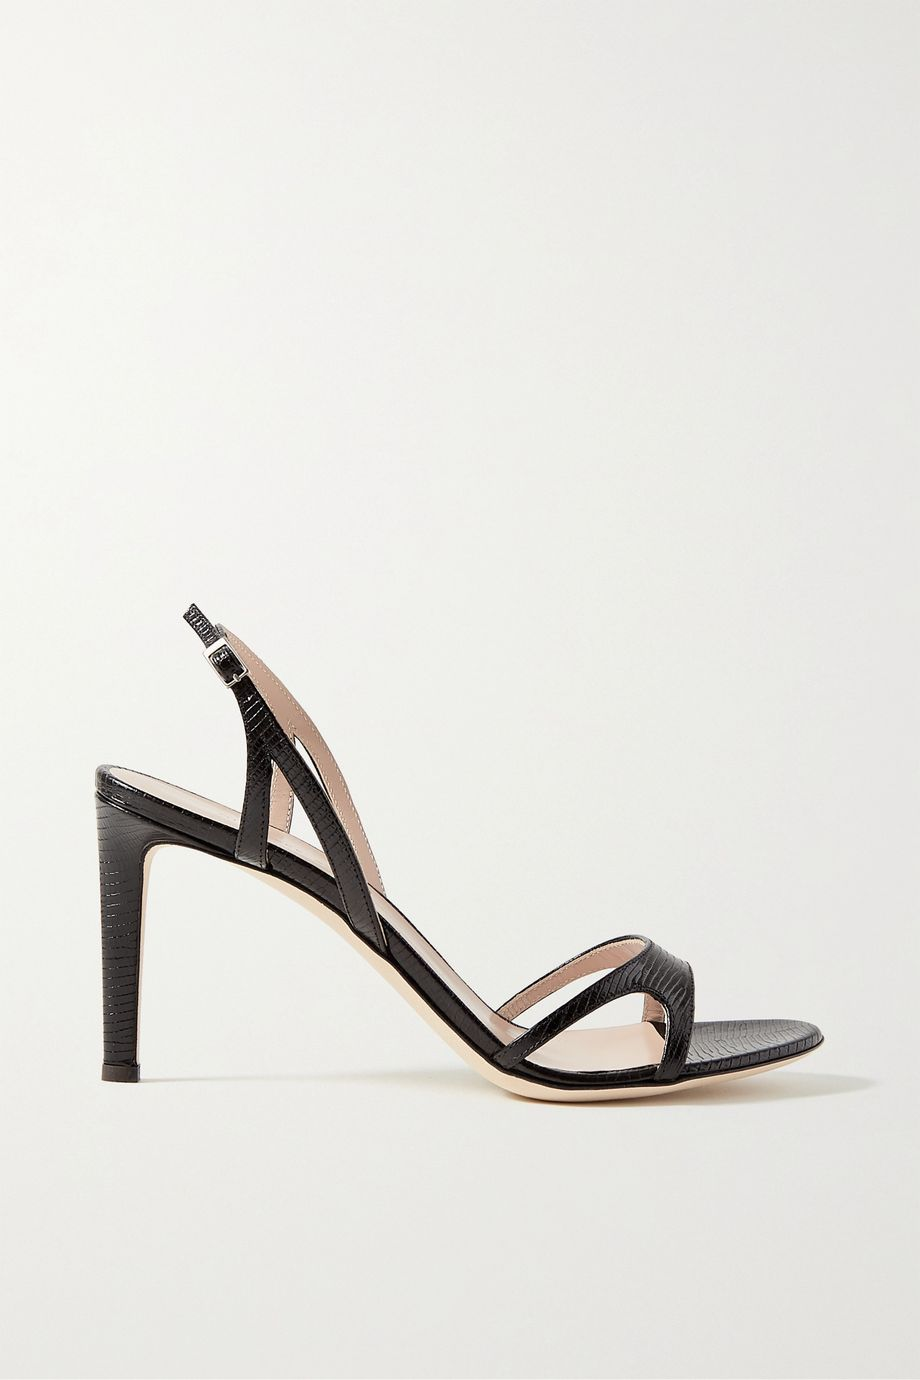 Giuseppe Zanotti Lizard-effect leather slingback sandals